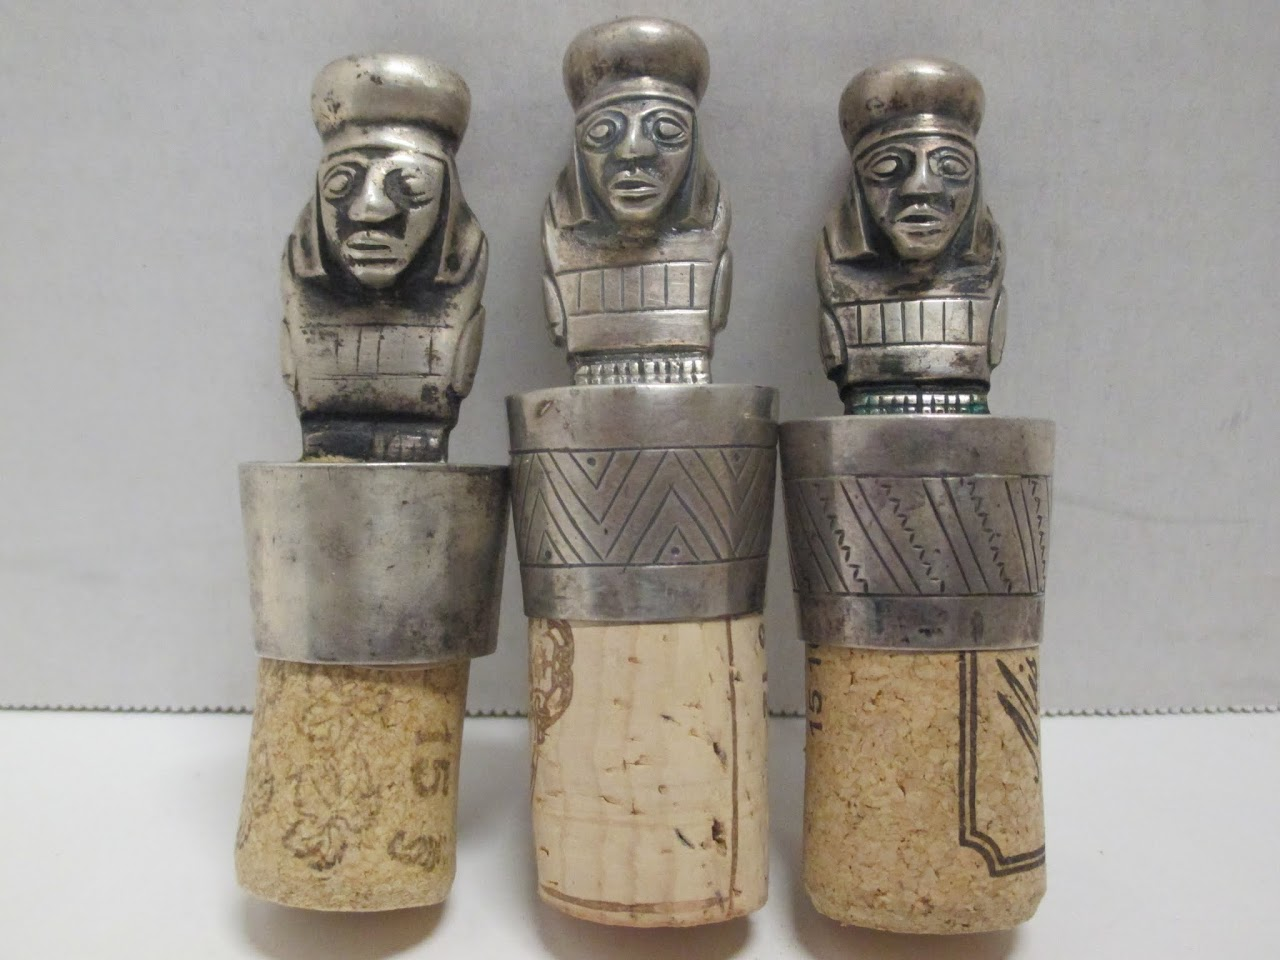 Vintage Peruvian Wine Stoppers